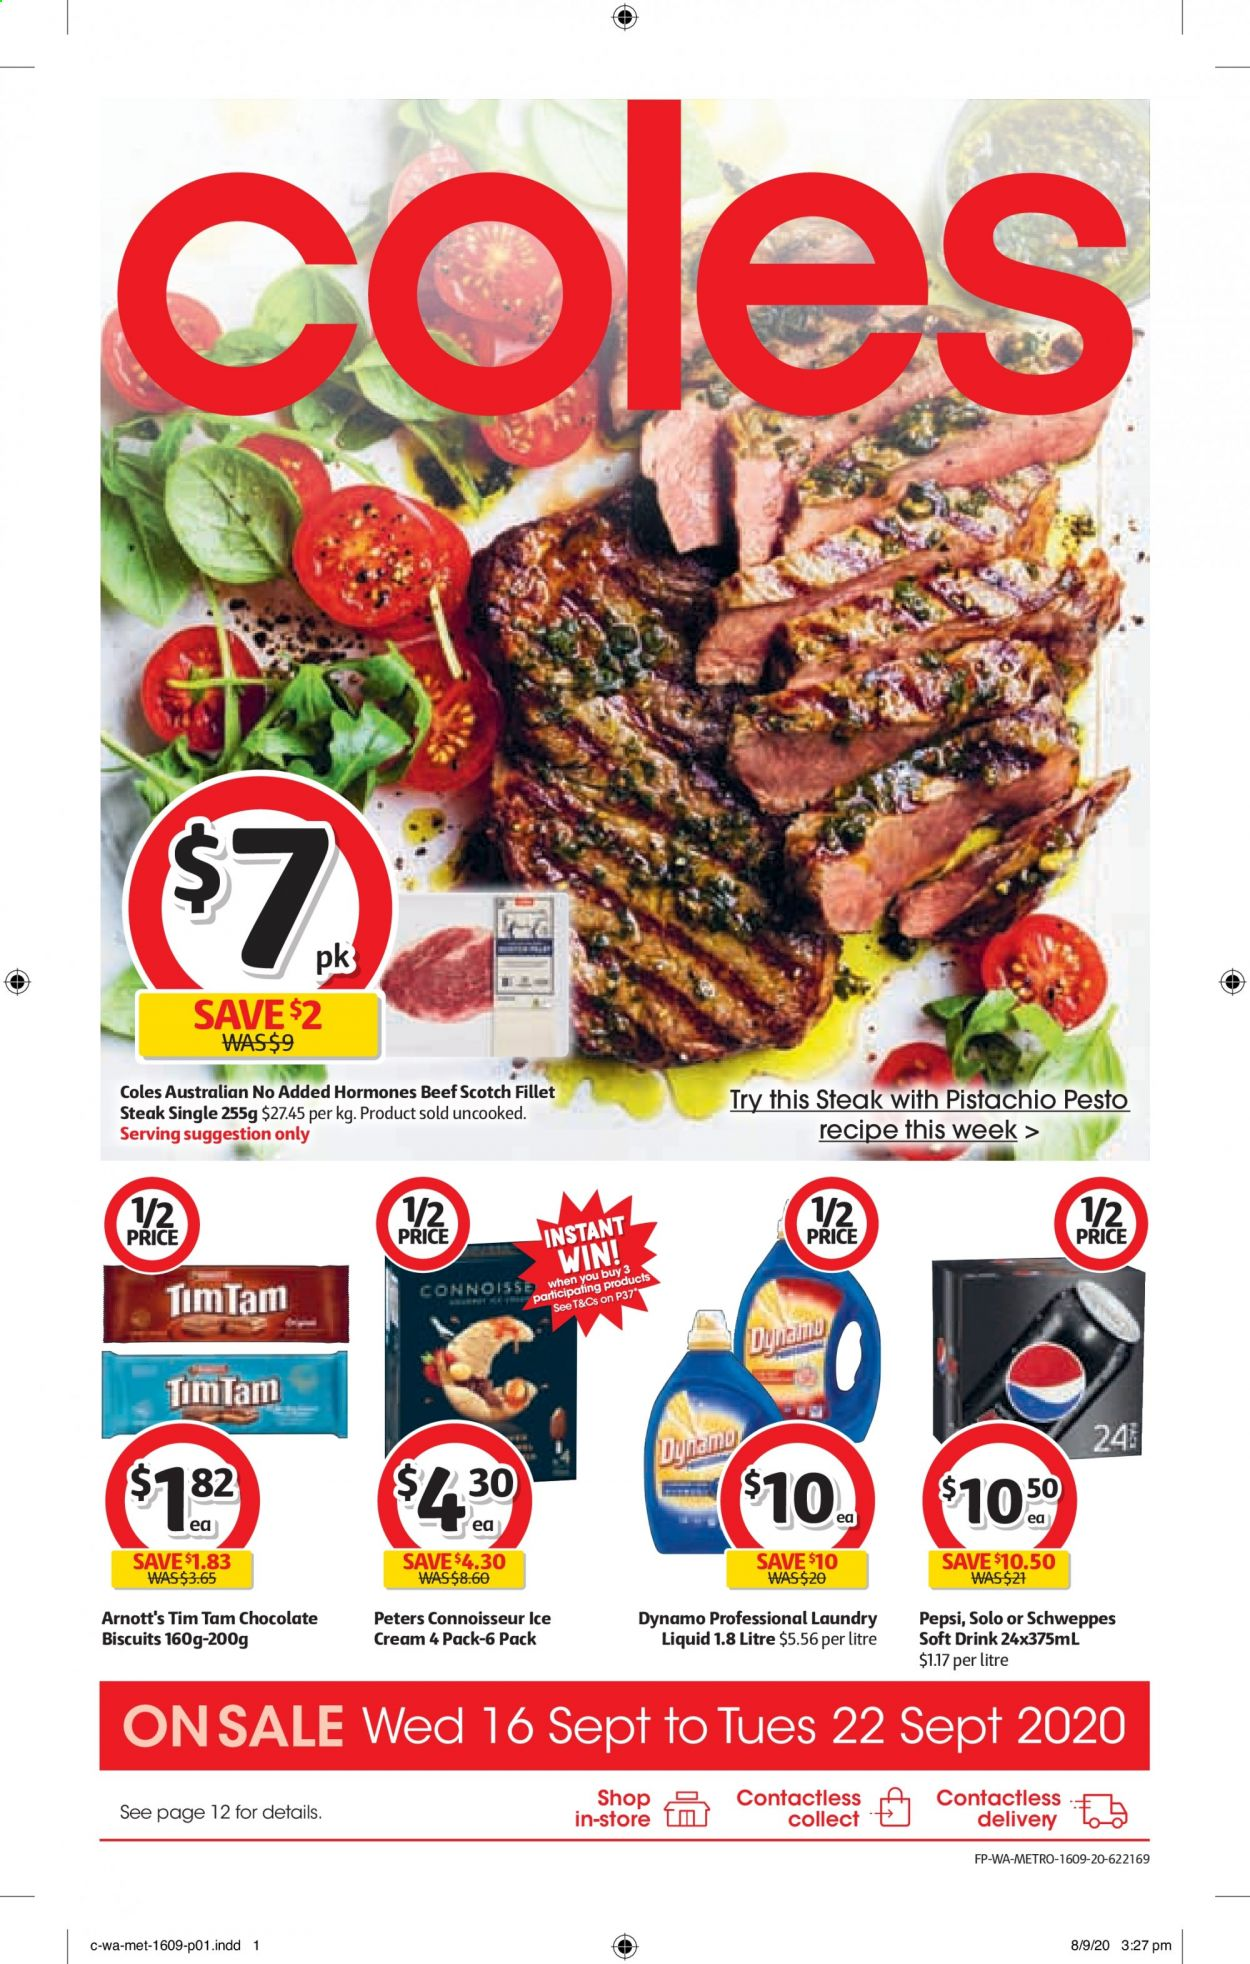 Coles Catalogue - 16.9.2020 - 22.9.2020 - Sales products - beef meat, biscuits, cream, schweppes, pesto, pepsi, chocolate, steak, drink, liquid, soft drink, metro. Page 1.